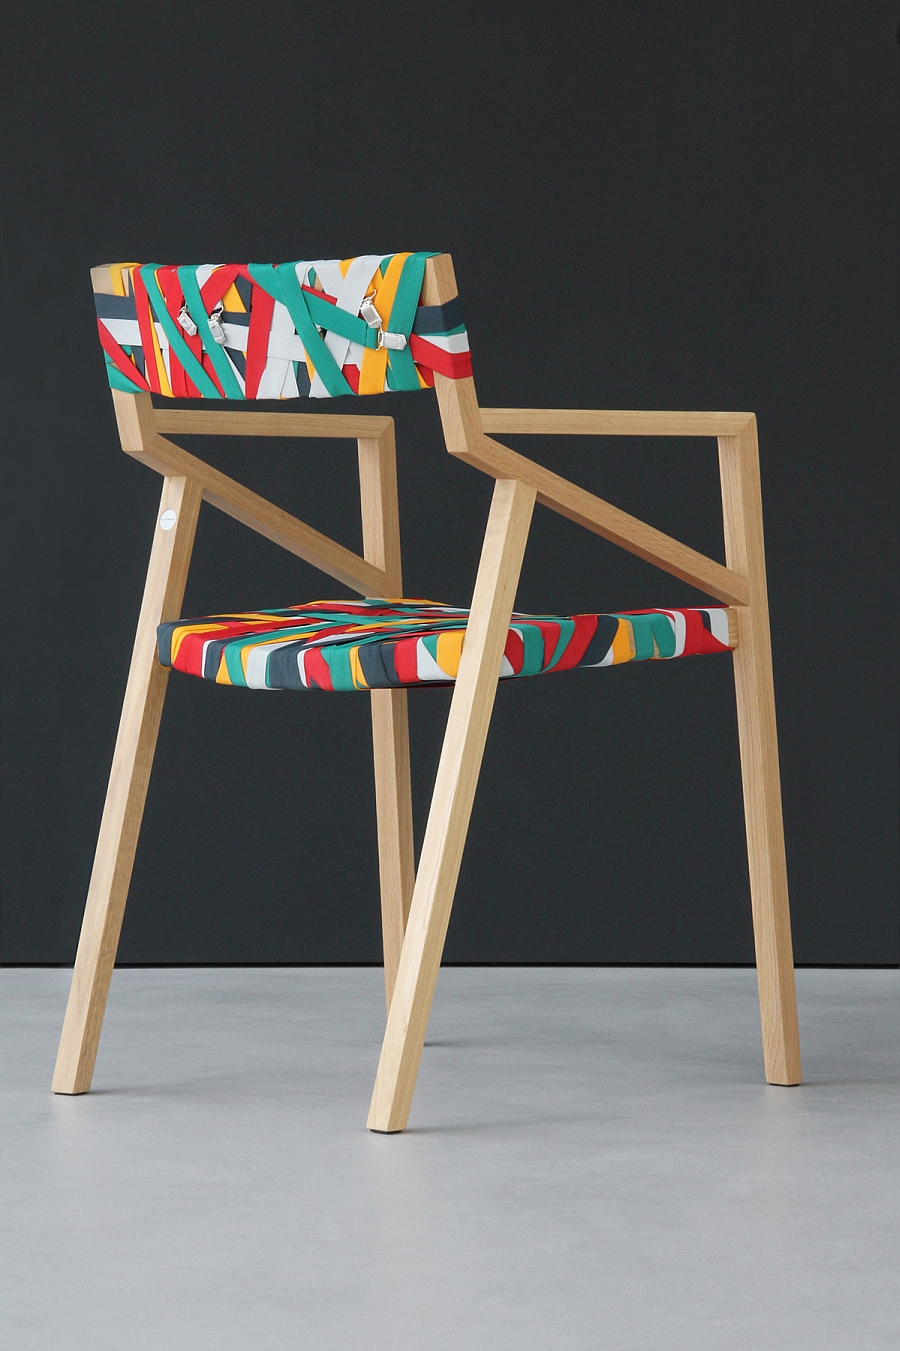 Gorgeous chair with a solid wood frame and wrapped in colorful suspenders